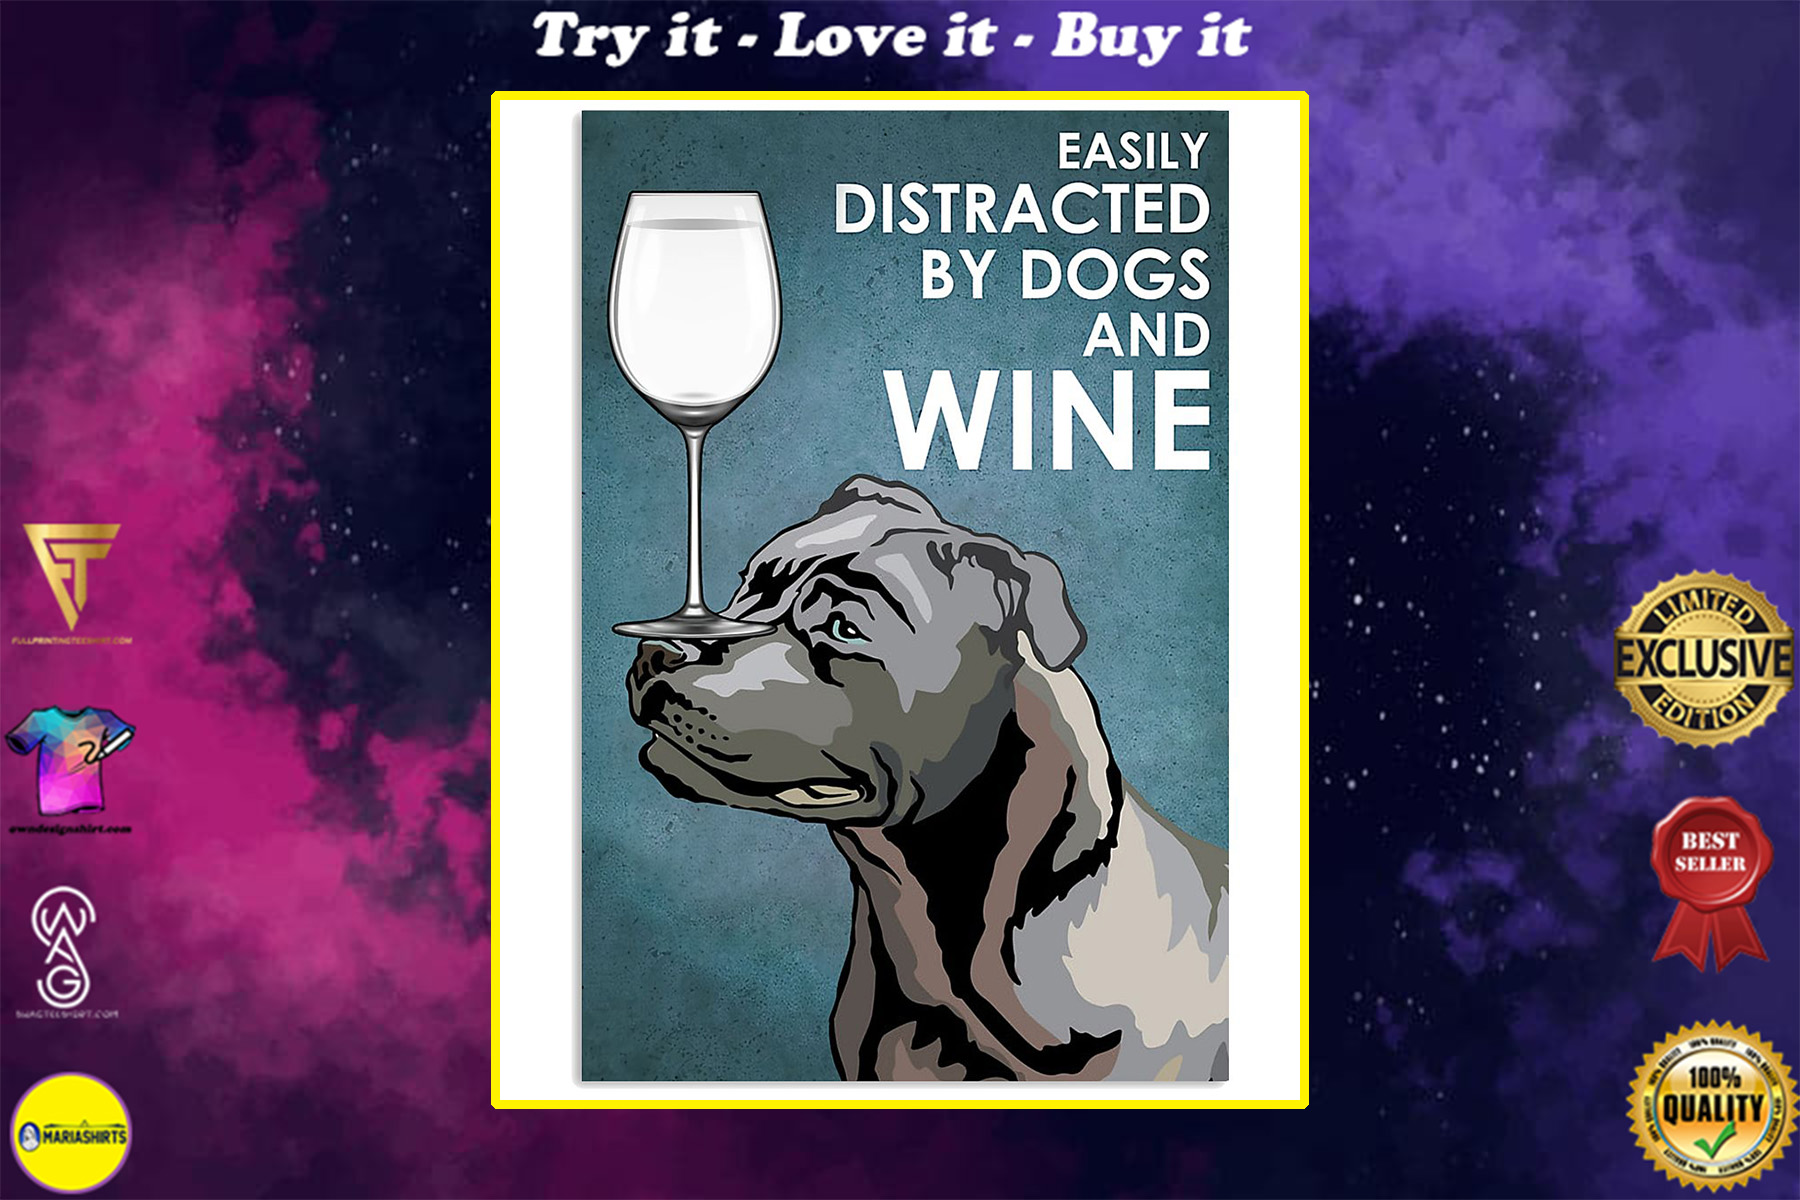 staffordshire bull terrier easily distracted by dogs and wine poster